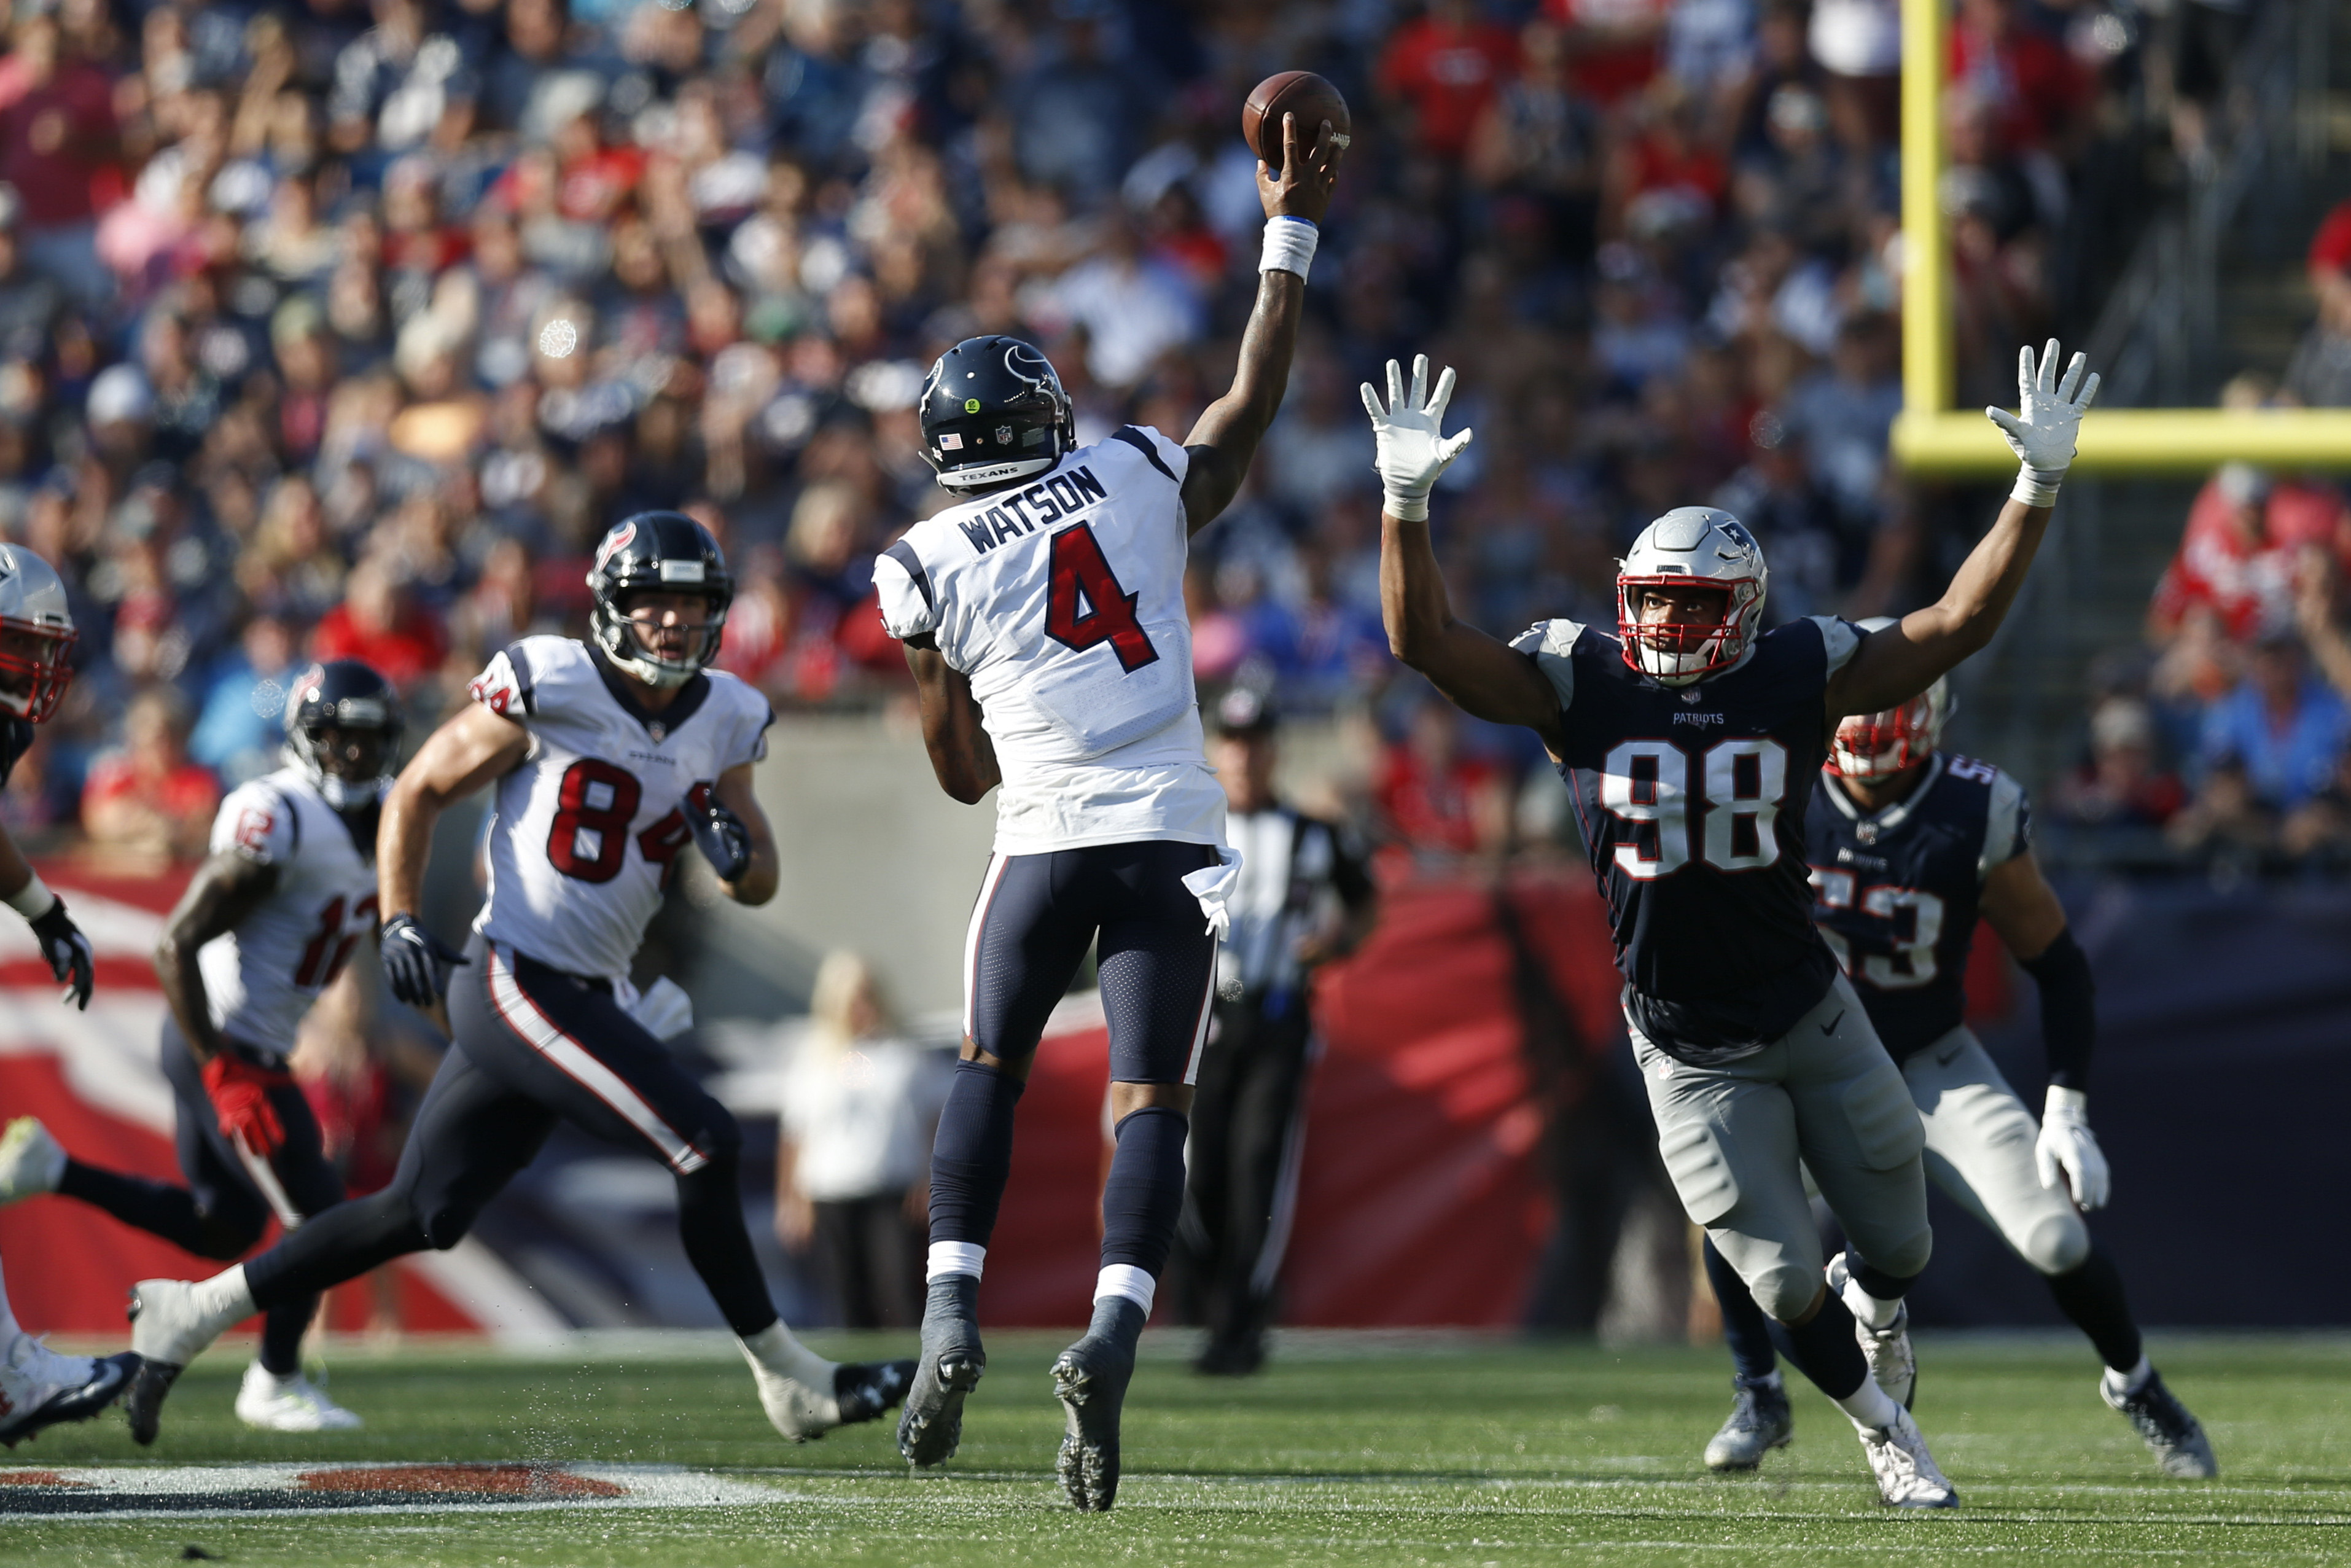 Sep 24, 2017; Foxborough, MA, USA; Houston Texans quarterback Deshaun Watson (4) throws a pass while pressured by New England Patriots defensive end Trey Flowers (98) during the second half at Gillette Stadium. Mandatory Credit: Greg M. Cooper-USA TODAY Sports